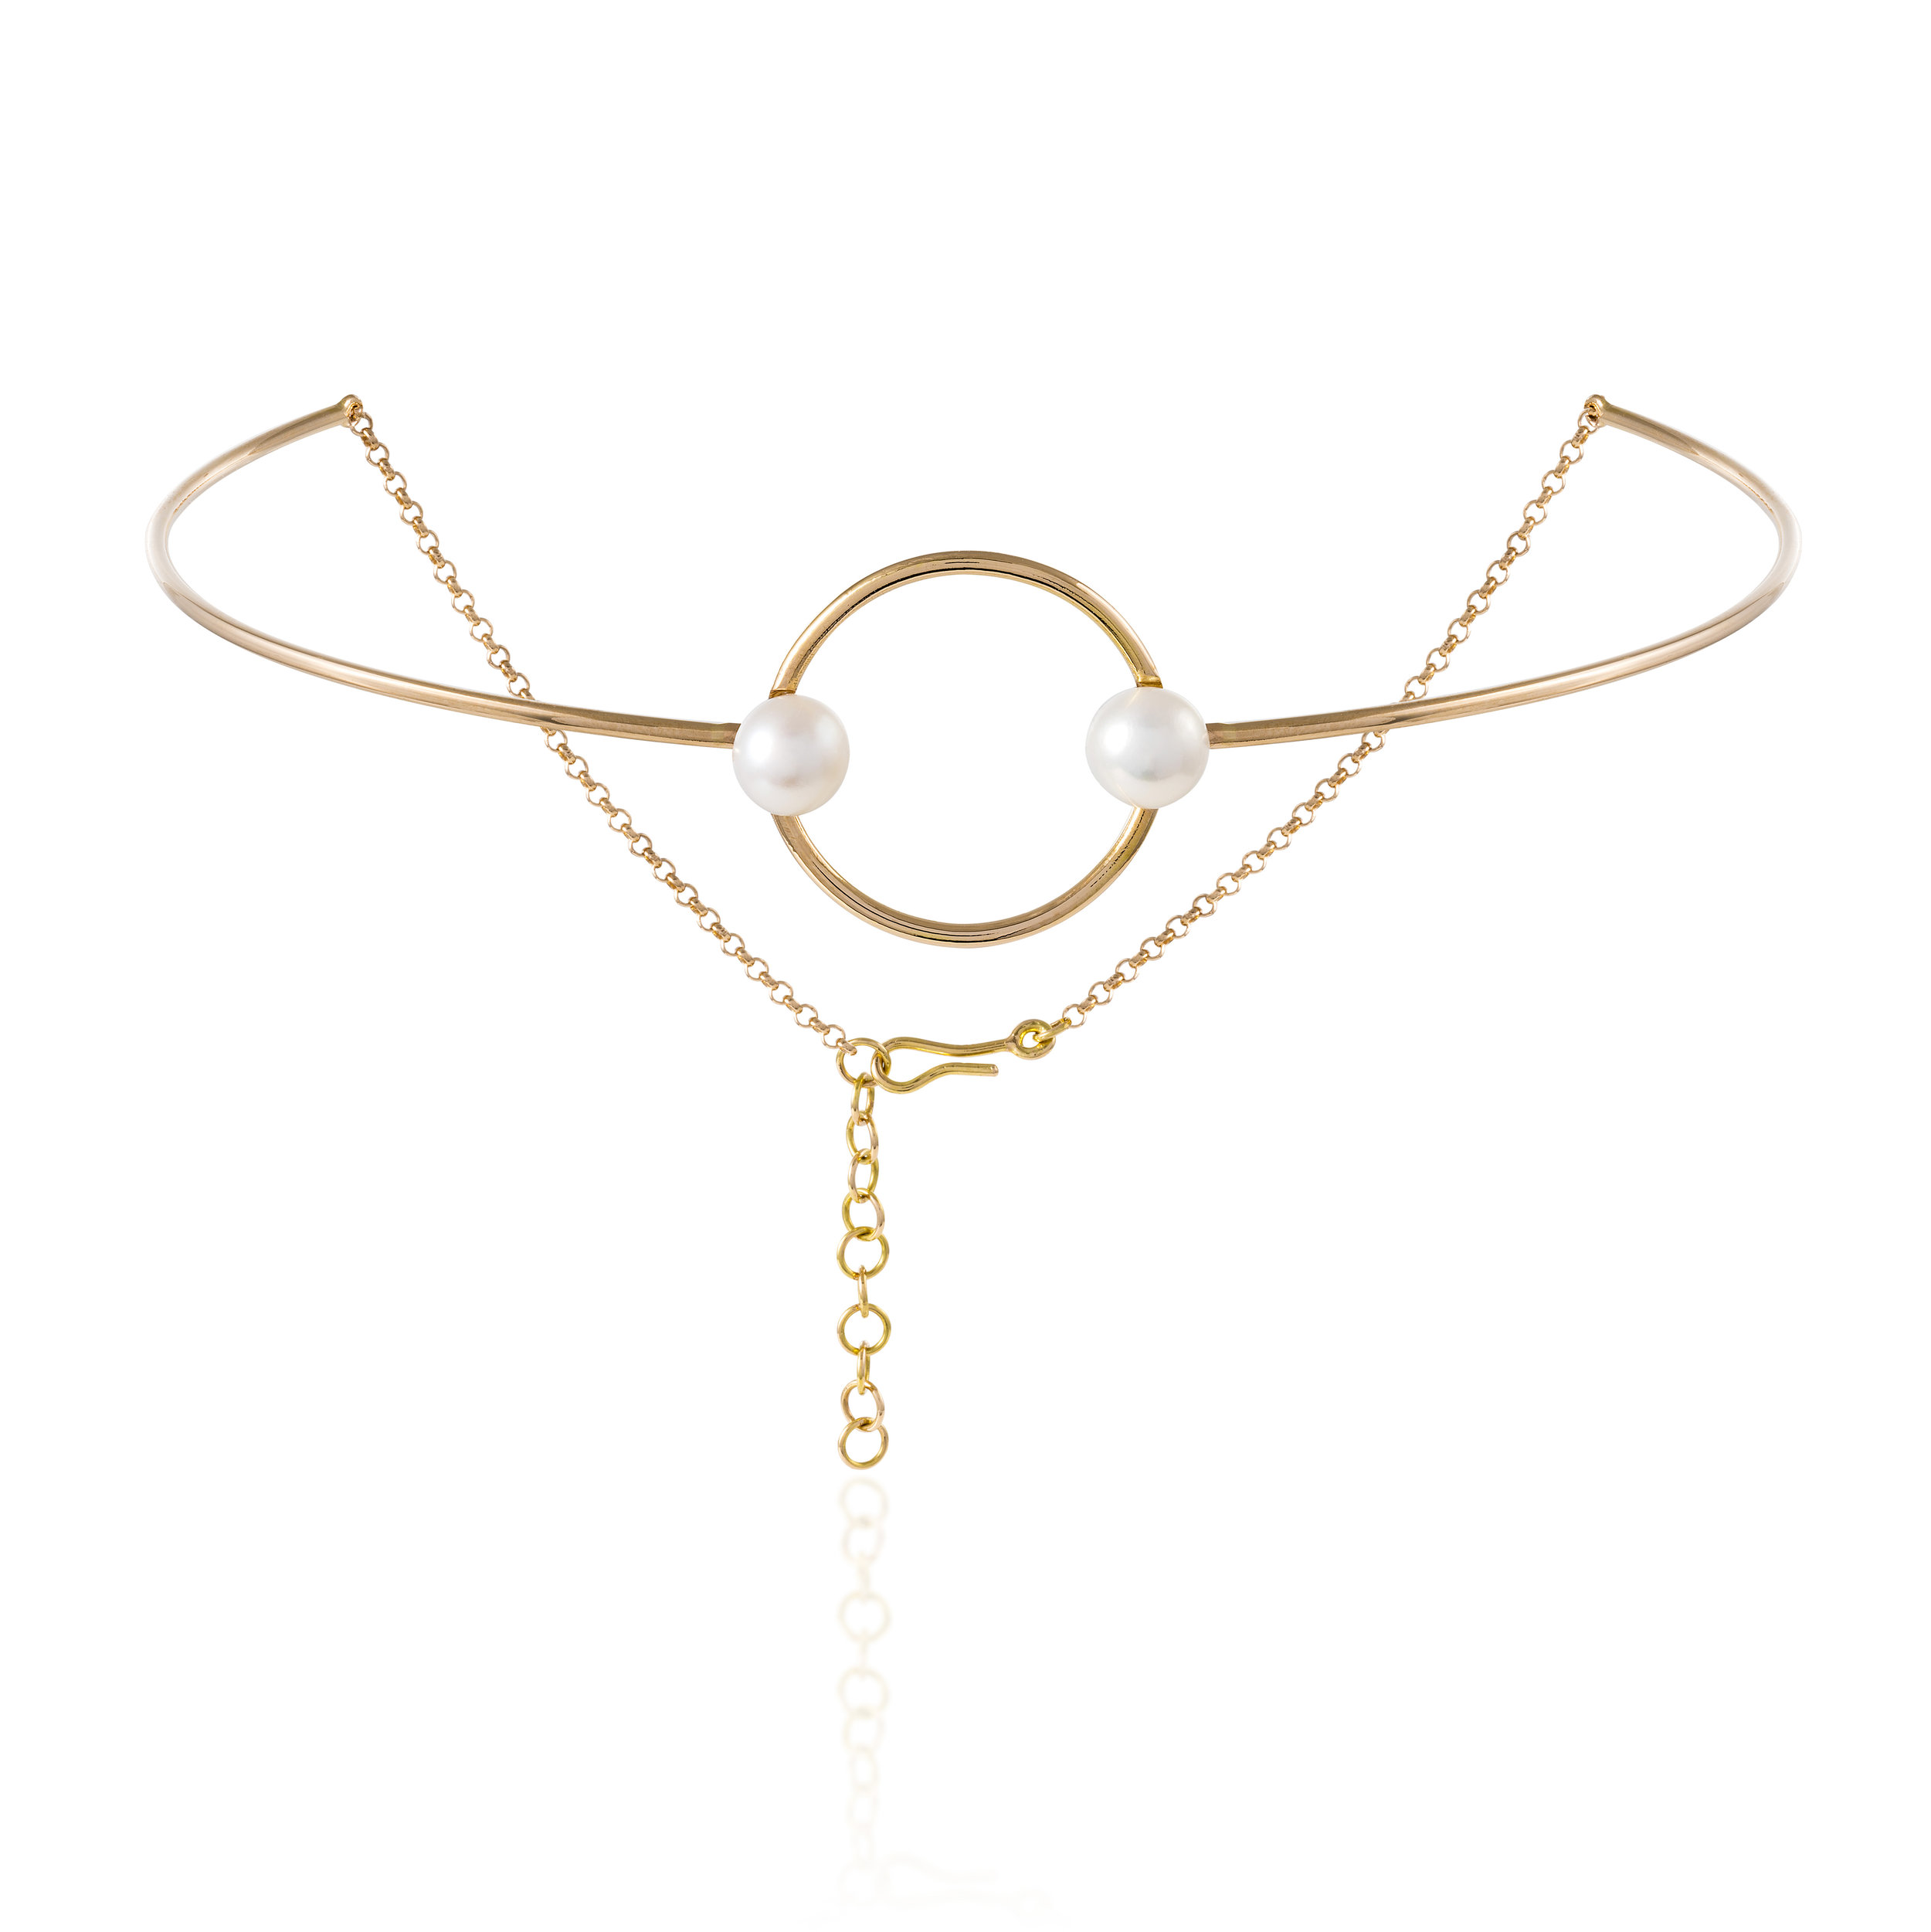 Colares / Chokers - Necklaces and Chokers